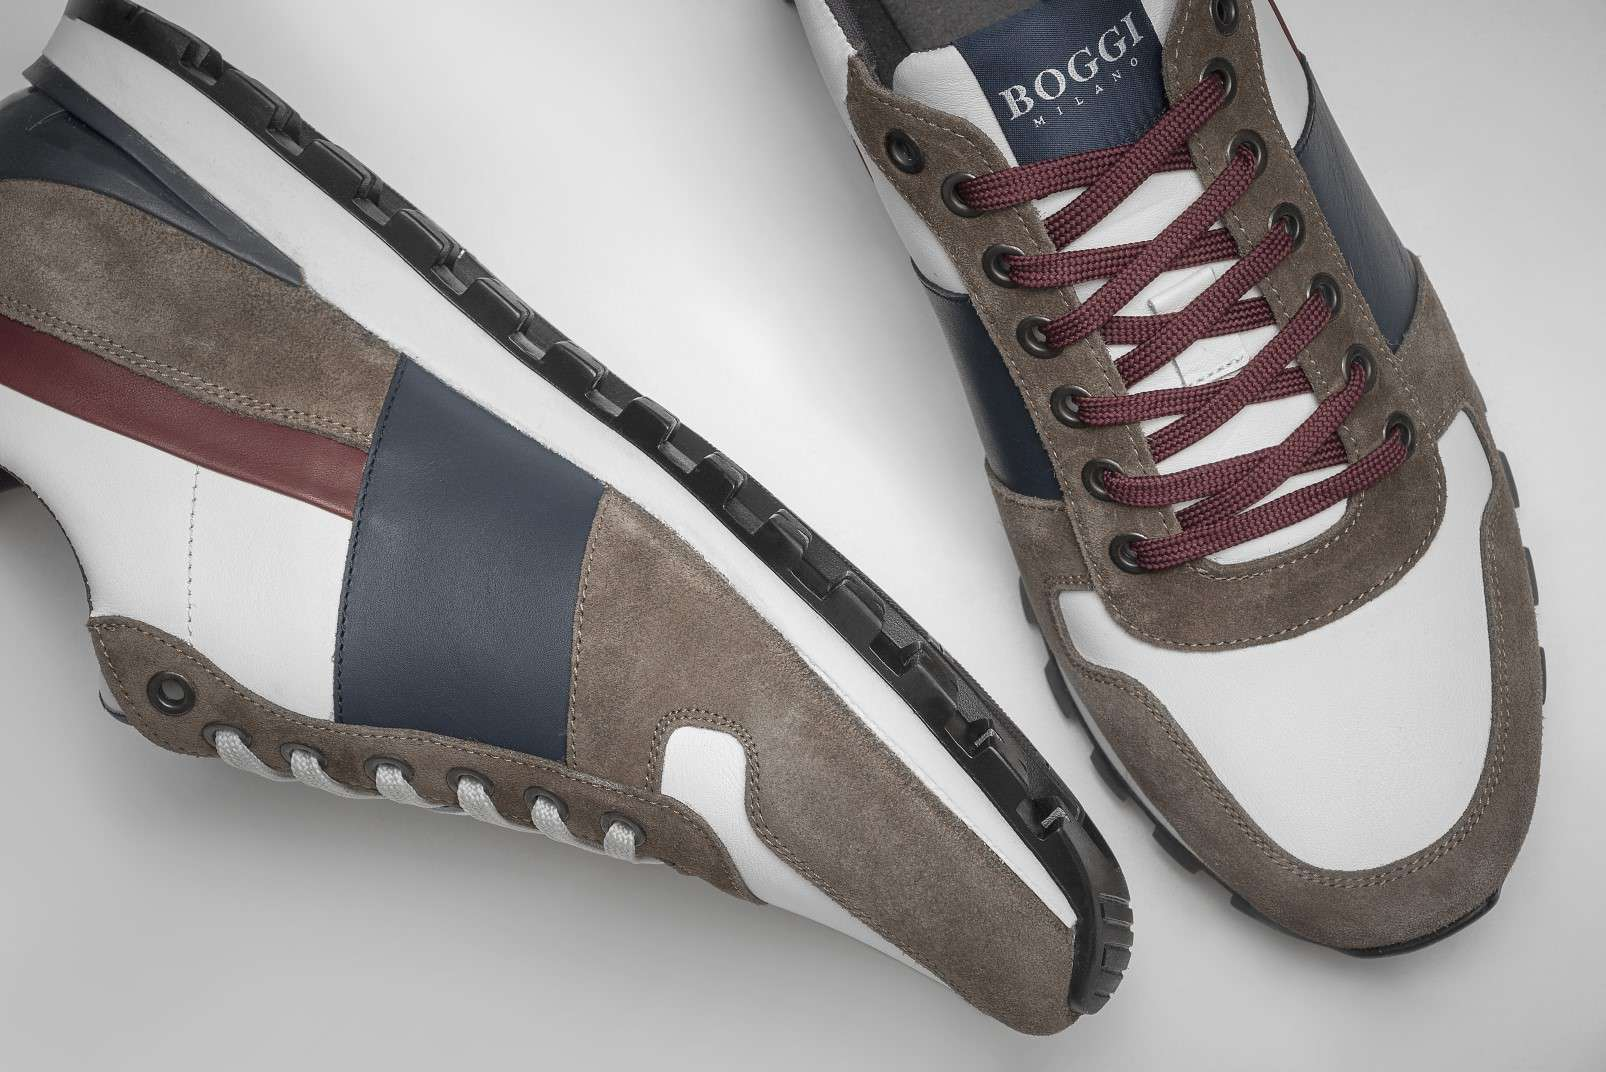 Boggi Milano running sneakers with suede and white, blue and burgundy leather